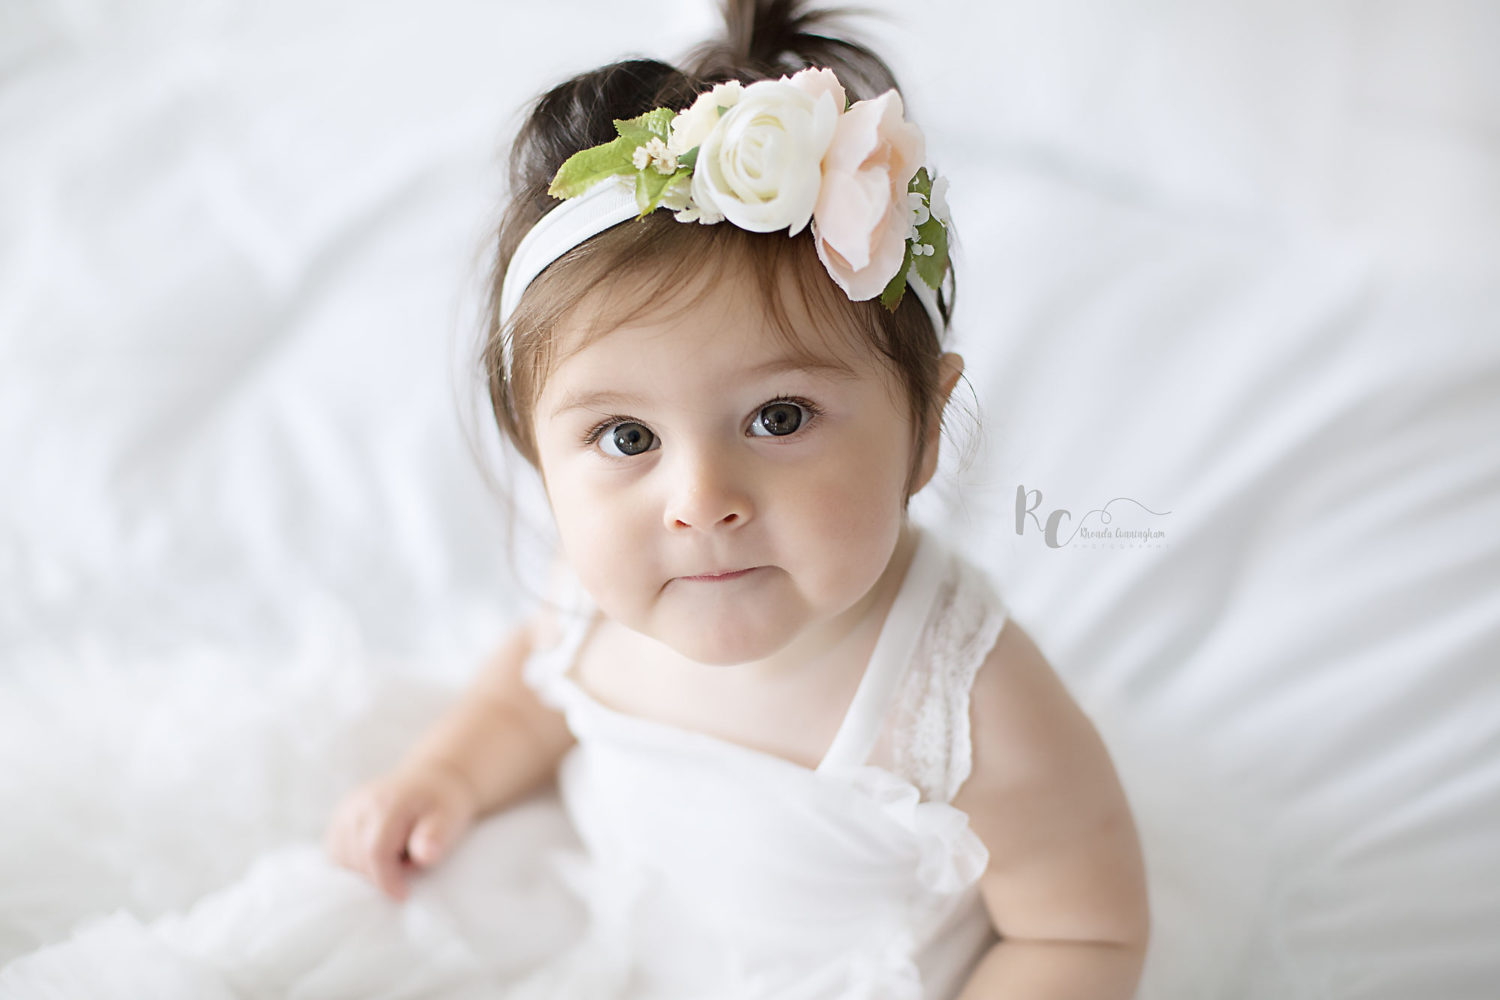 One year old baby girl all in white during one year portrait session captured by Lexington, Ky photographer, Rhonda Cunningham Photography.